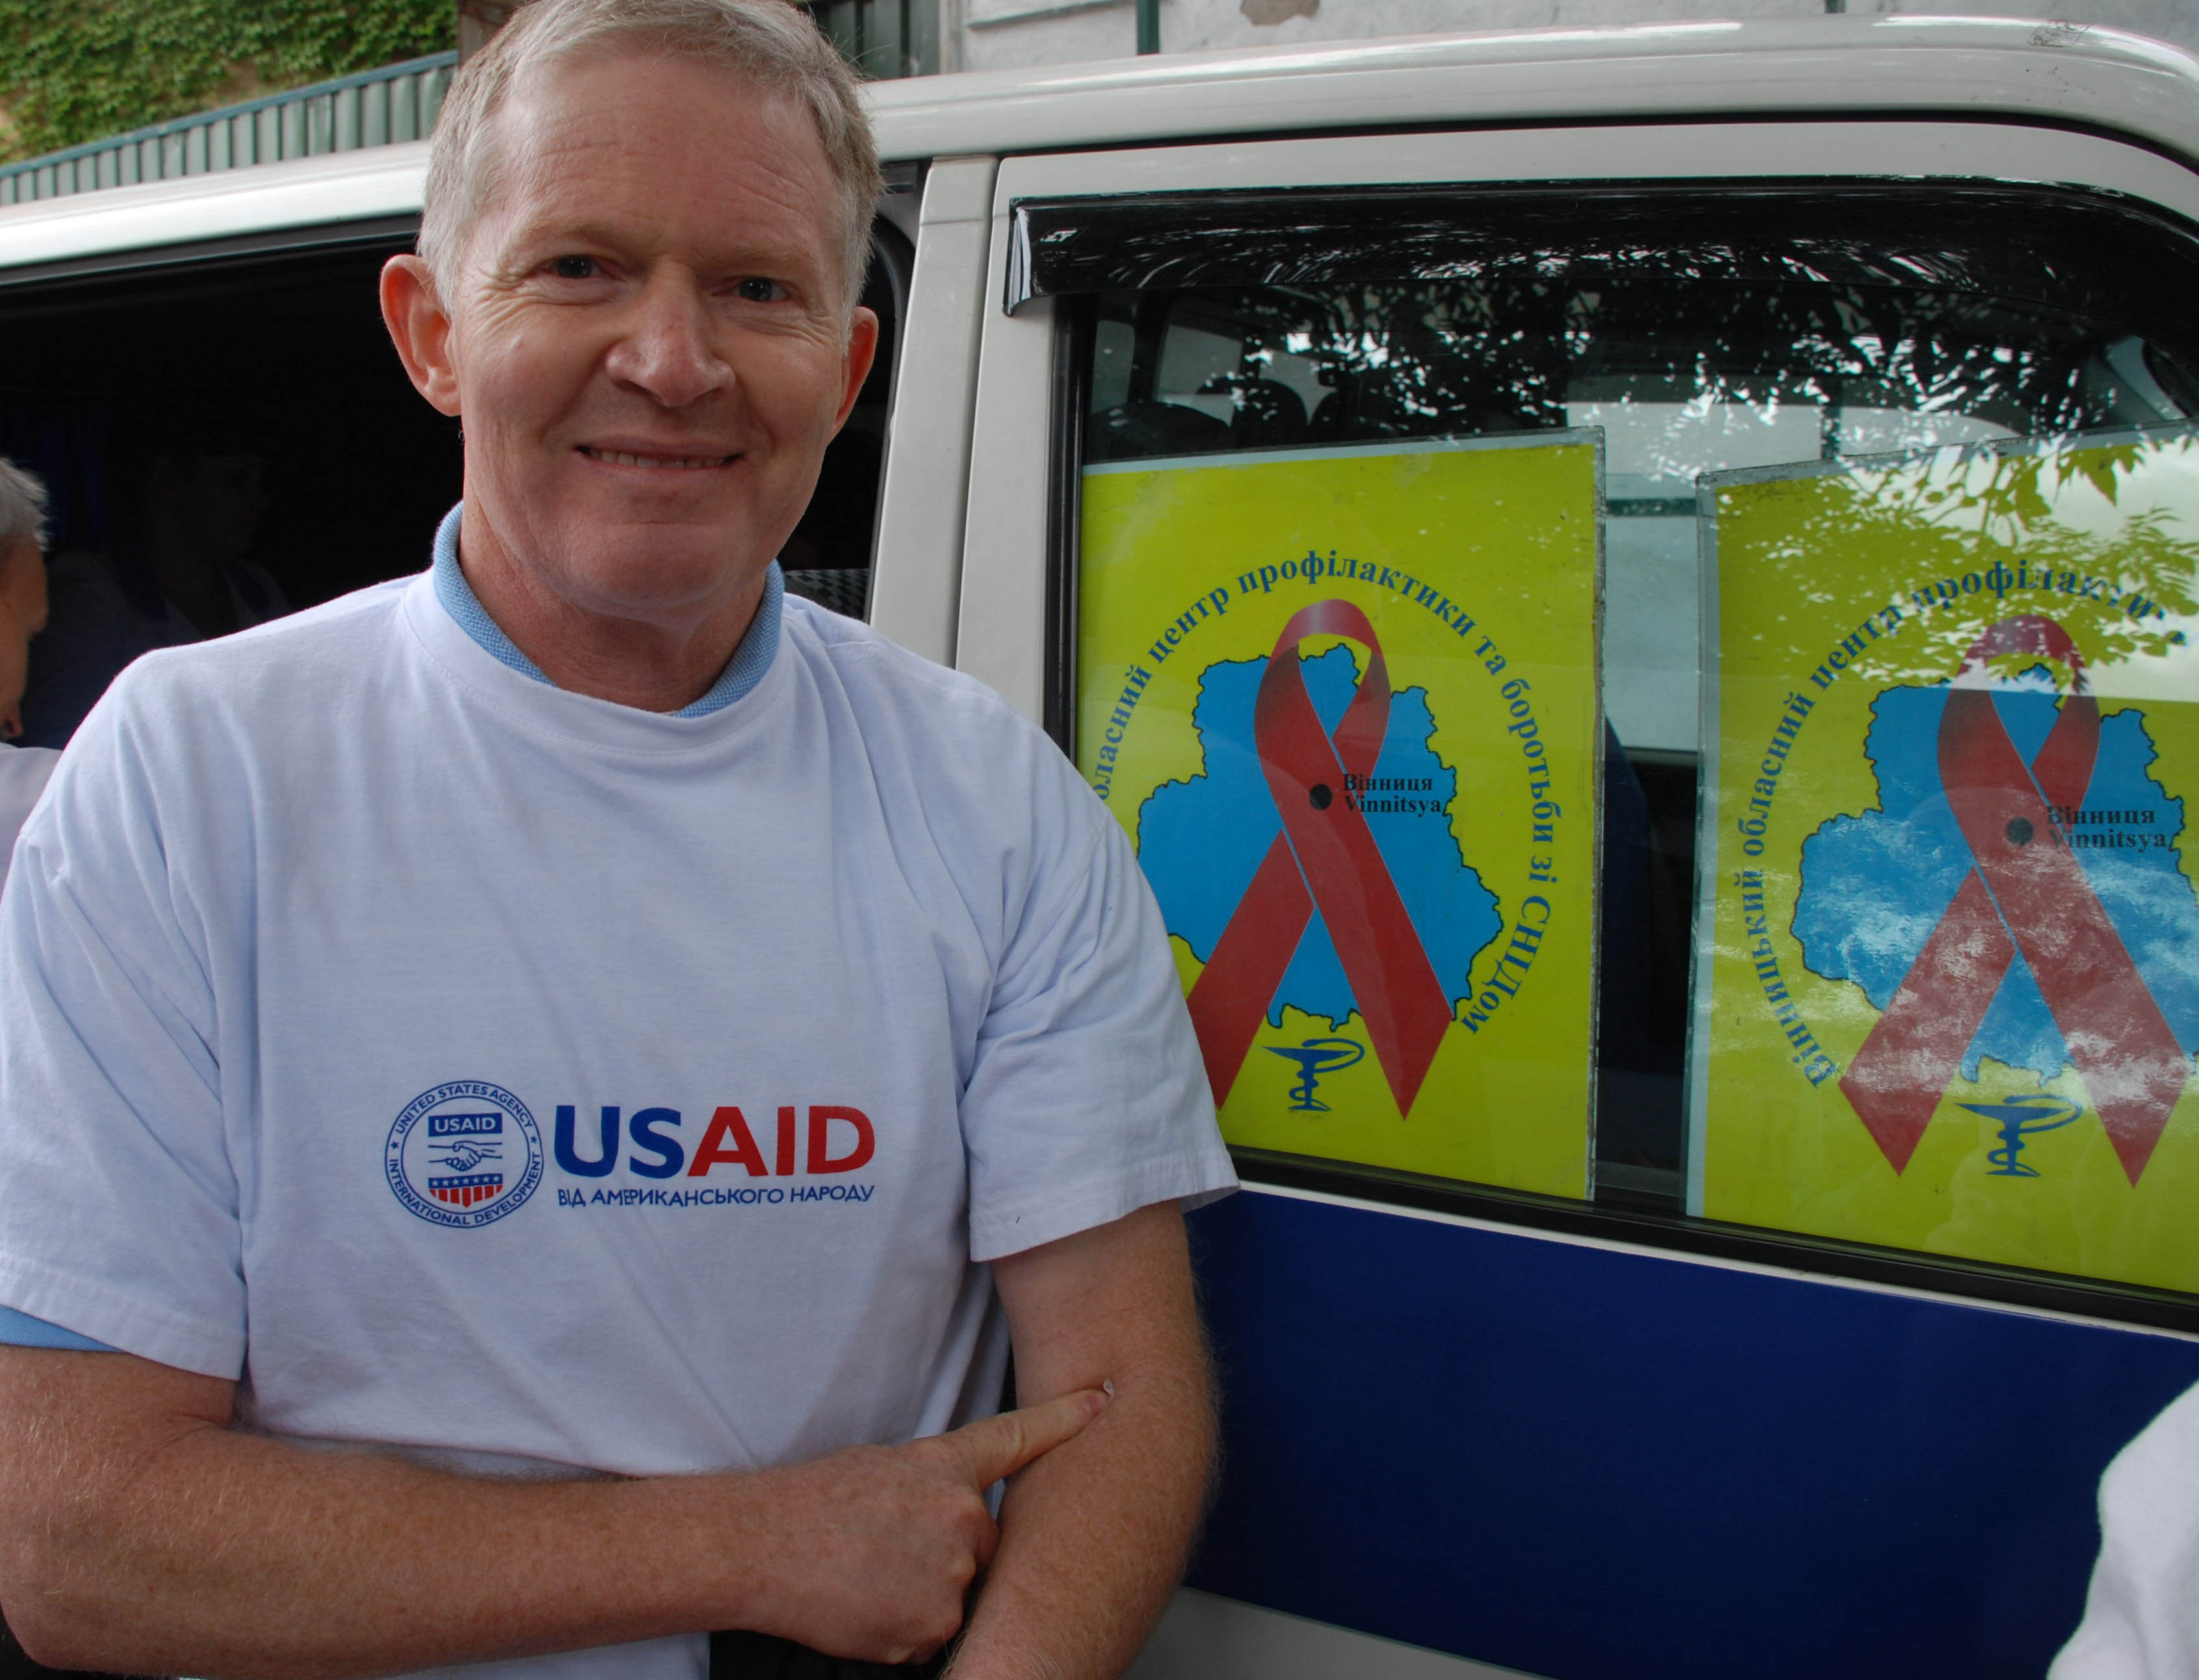 USAID Mission Director Jed Barton tests for HIV during a USAID field day event.